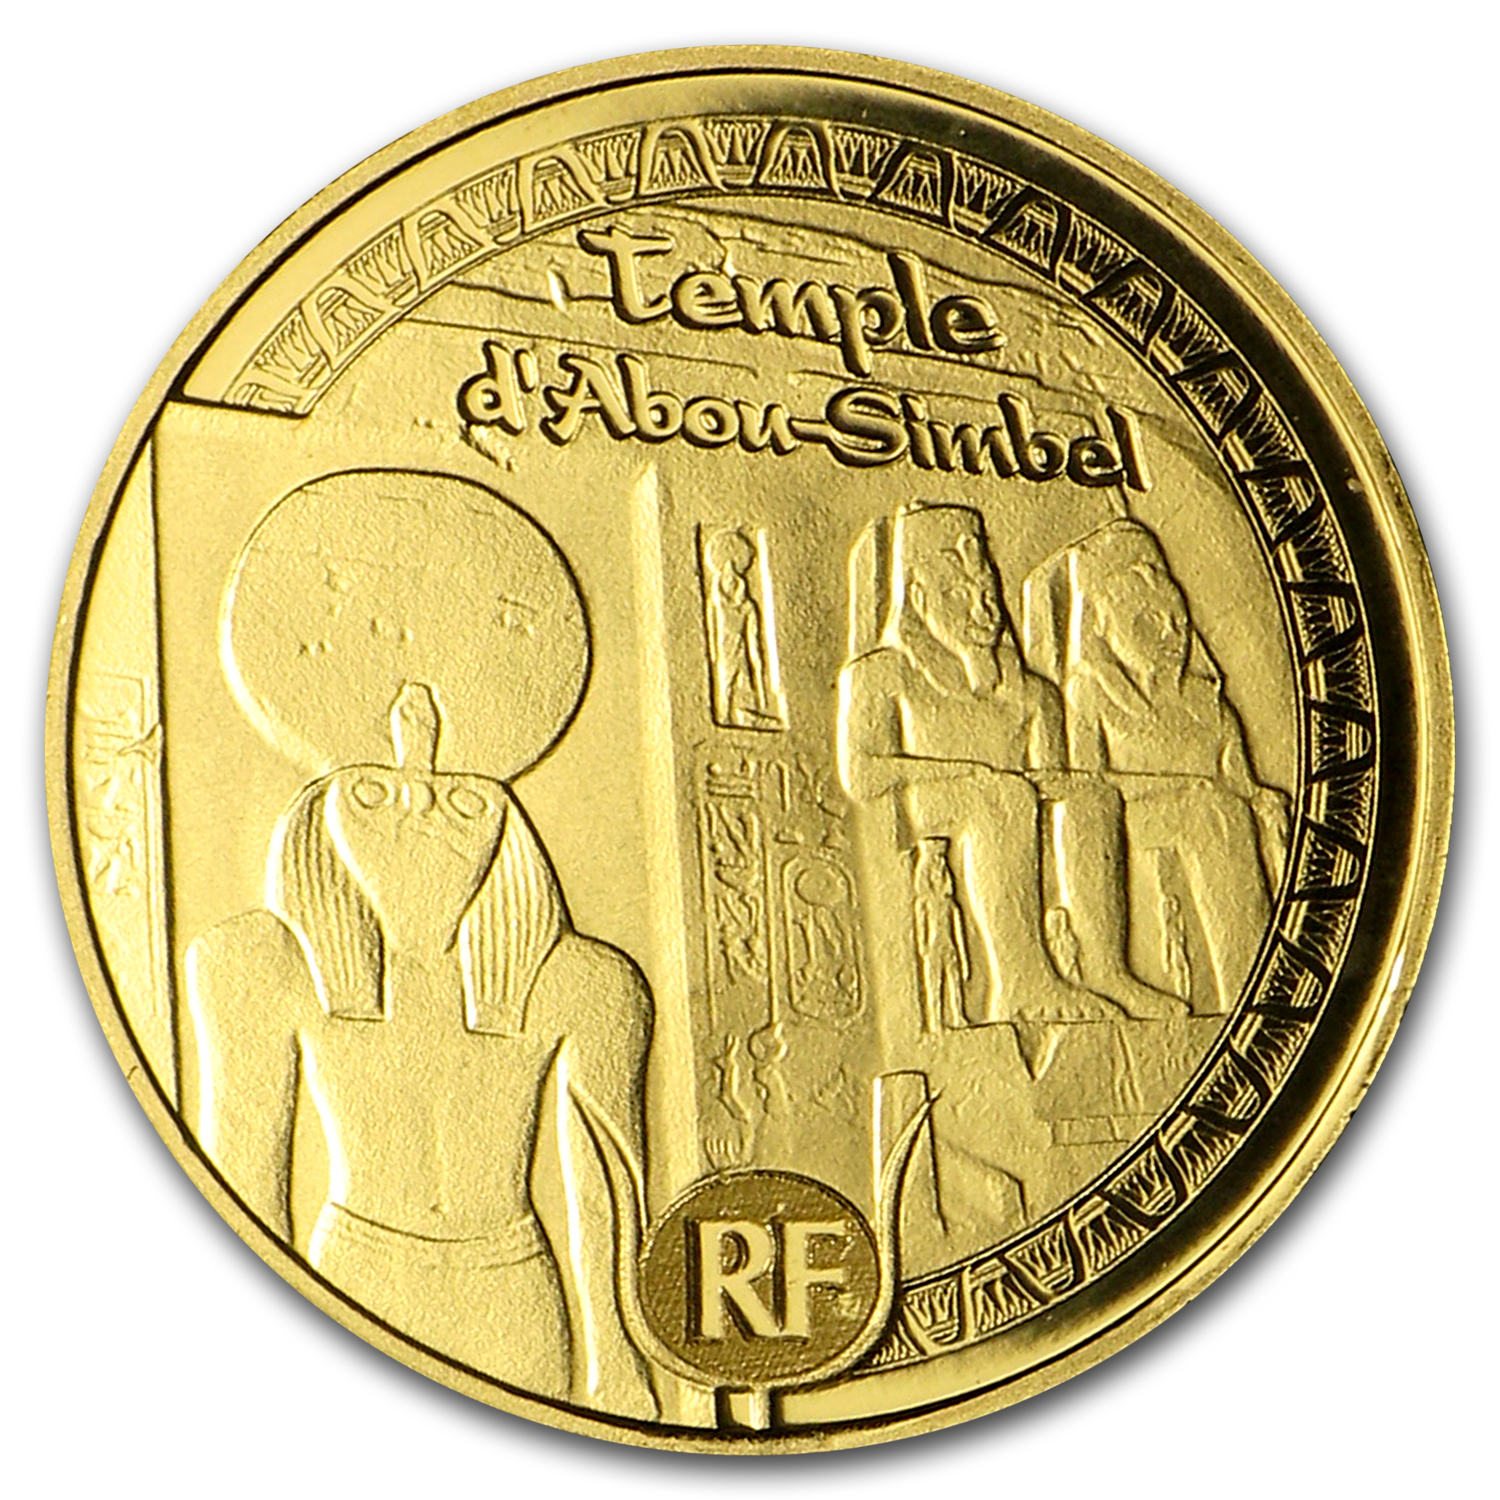 2012 1/2 gram Proof Gold €5 UNESCO Egyptian Heritage Abu Simbel